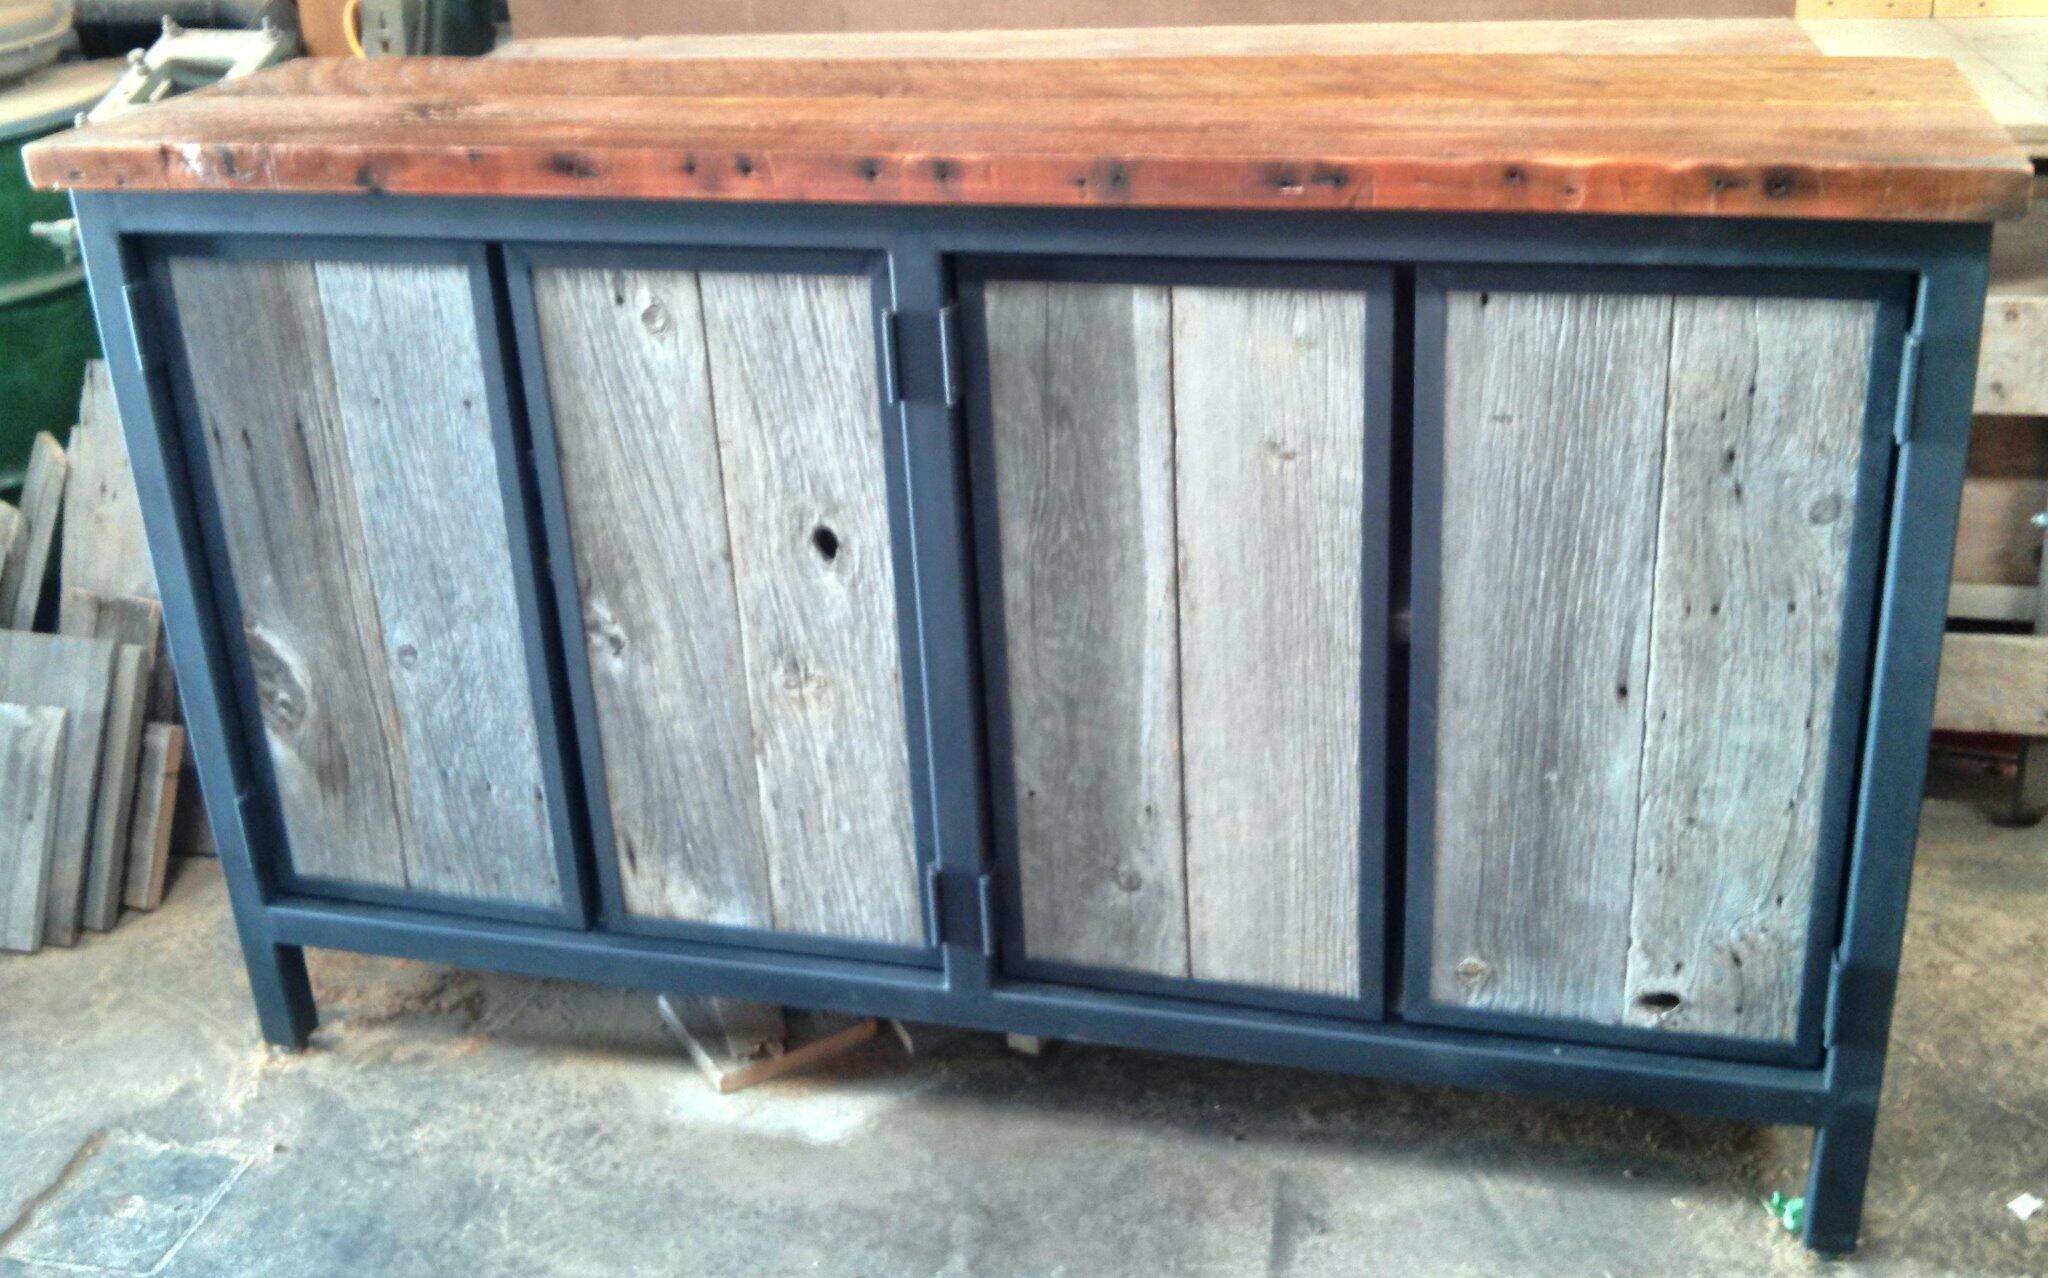 Just completed - steel/reclaimed wood cabinet - client brought steel base and we filled it with barn board http://t.co/EvlnD6vcyR